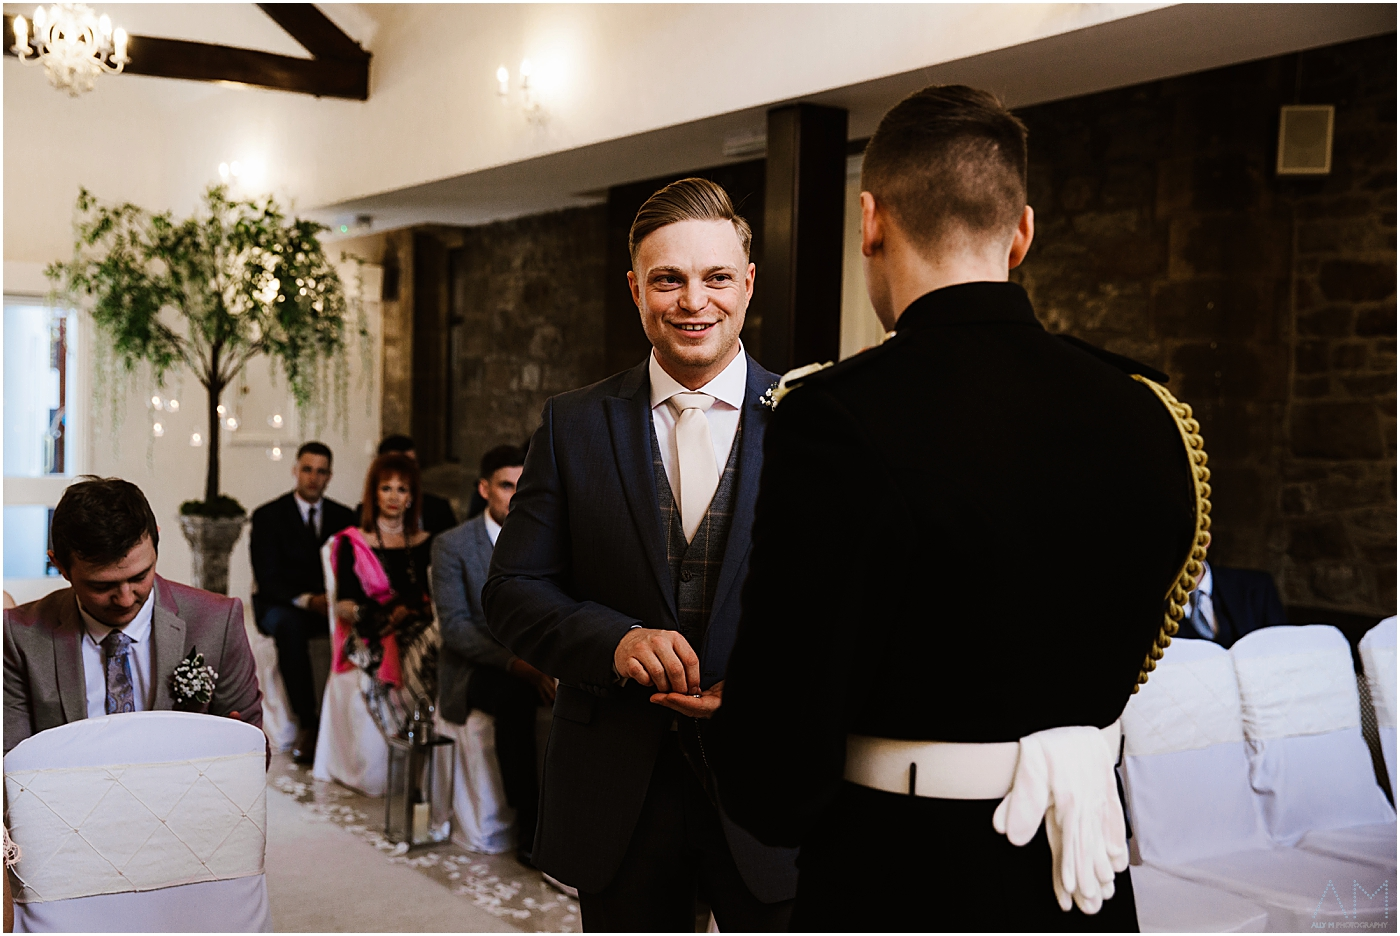 Best man smiling at the groom